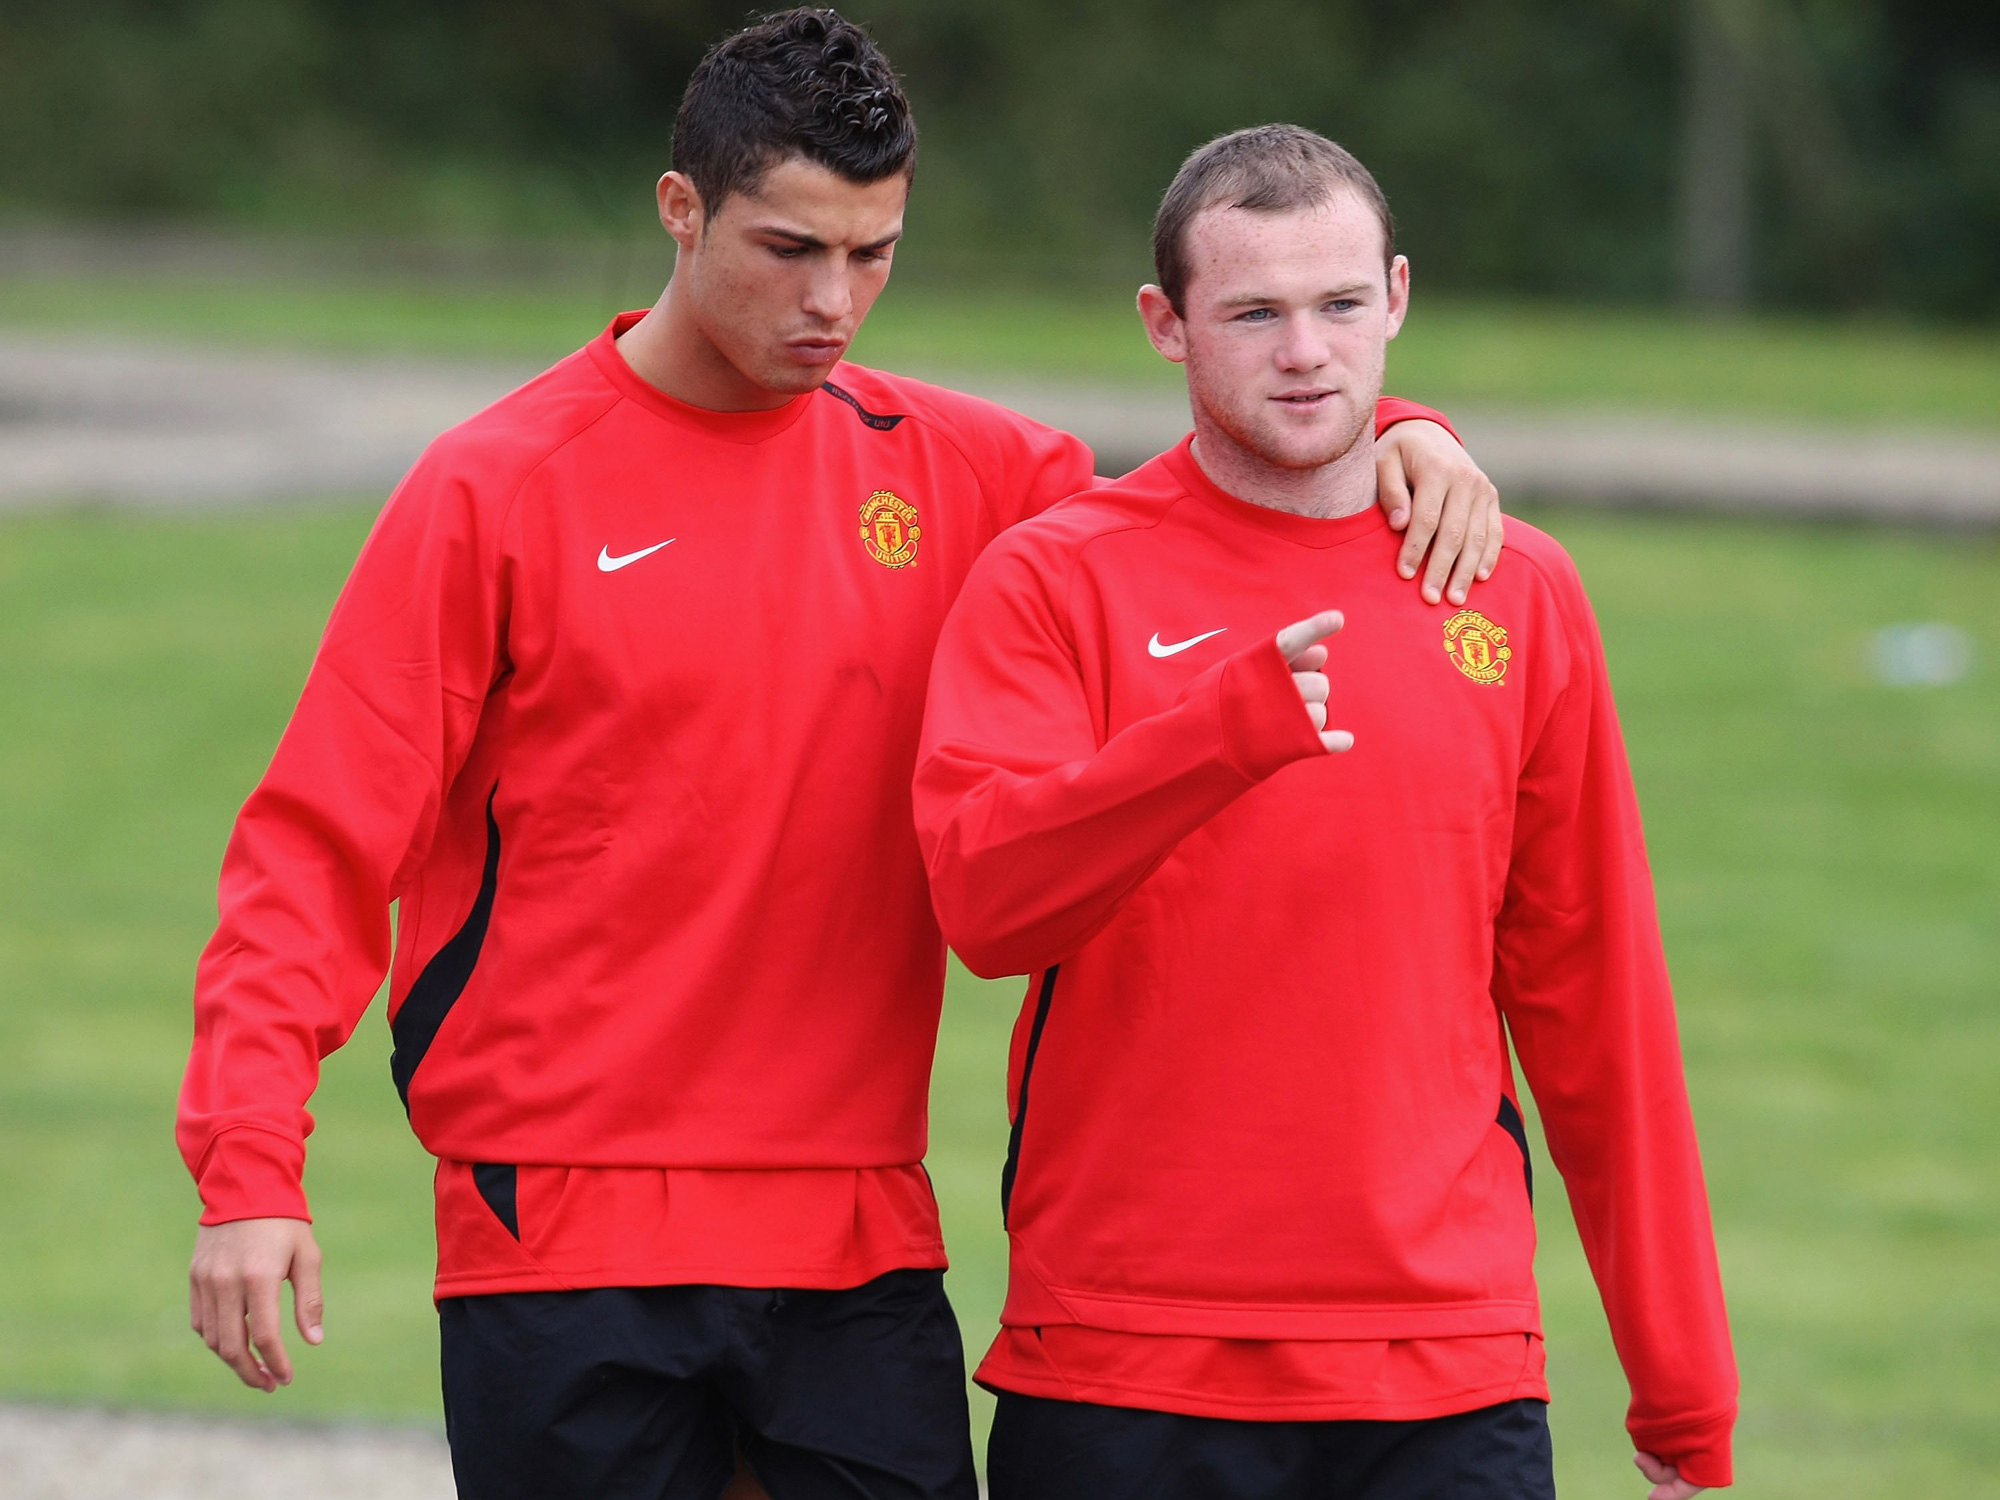 Wayne Rooney and Cristiano Ronaldo once formed a lethal tandem for Manchester United